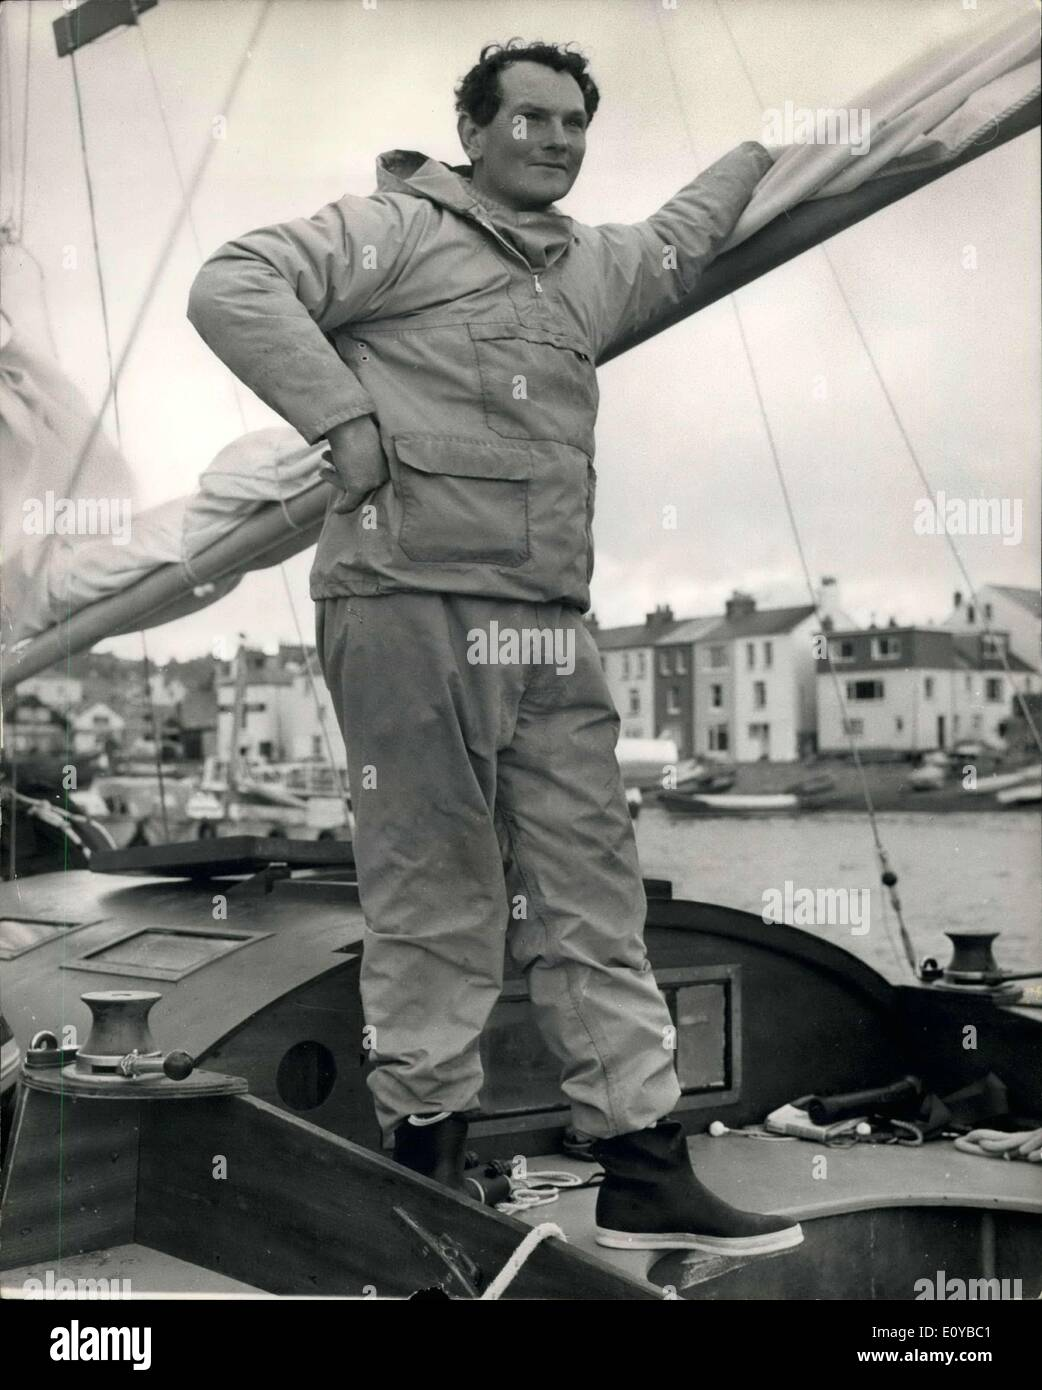 Jul. 27, 1969 - July 27th 1969 The lone sailor sensation. Donald Crowhurst 'never went round the world' Donald Crowhurst, the man hailed as a hero sailing single-handed around the world, never left the Atlantic during the 243 days he was at sea. The sensational discovery of his 'fake voyage' was announce by the Sunday Times newspaper, who organized the Golden Globe race. Crowhurst presumed dead after his 41-foot trimaran Teighnmouth Electron was found drifting 700 miles west of the Azores on July 10th, was favourite to win the £5,000 prize for the fastest time in the race - Stock Image